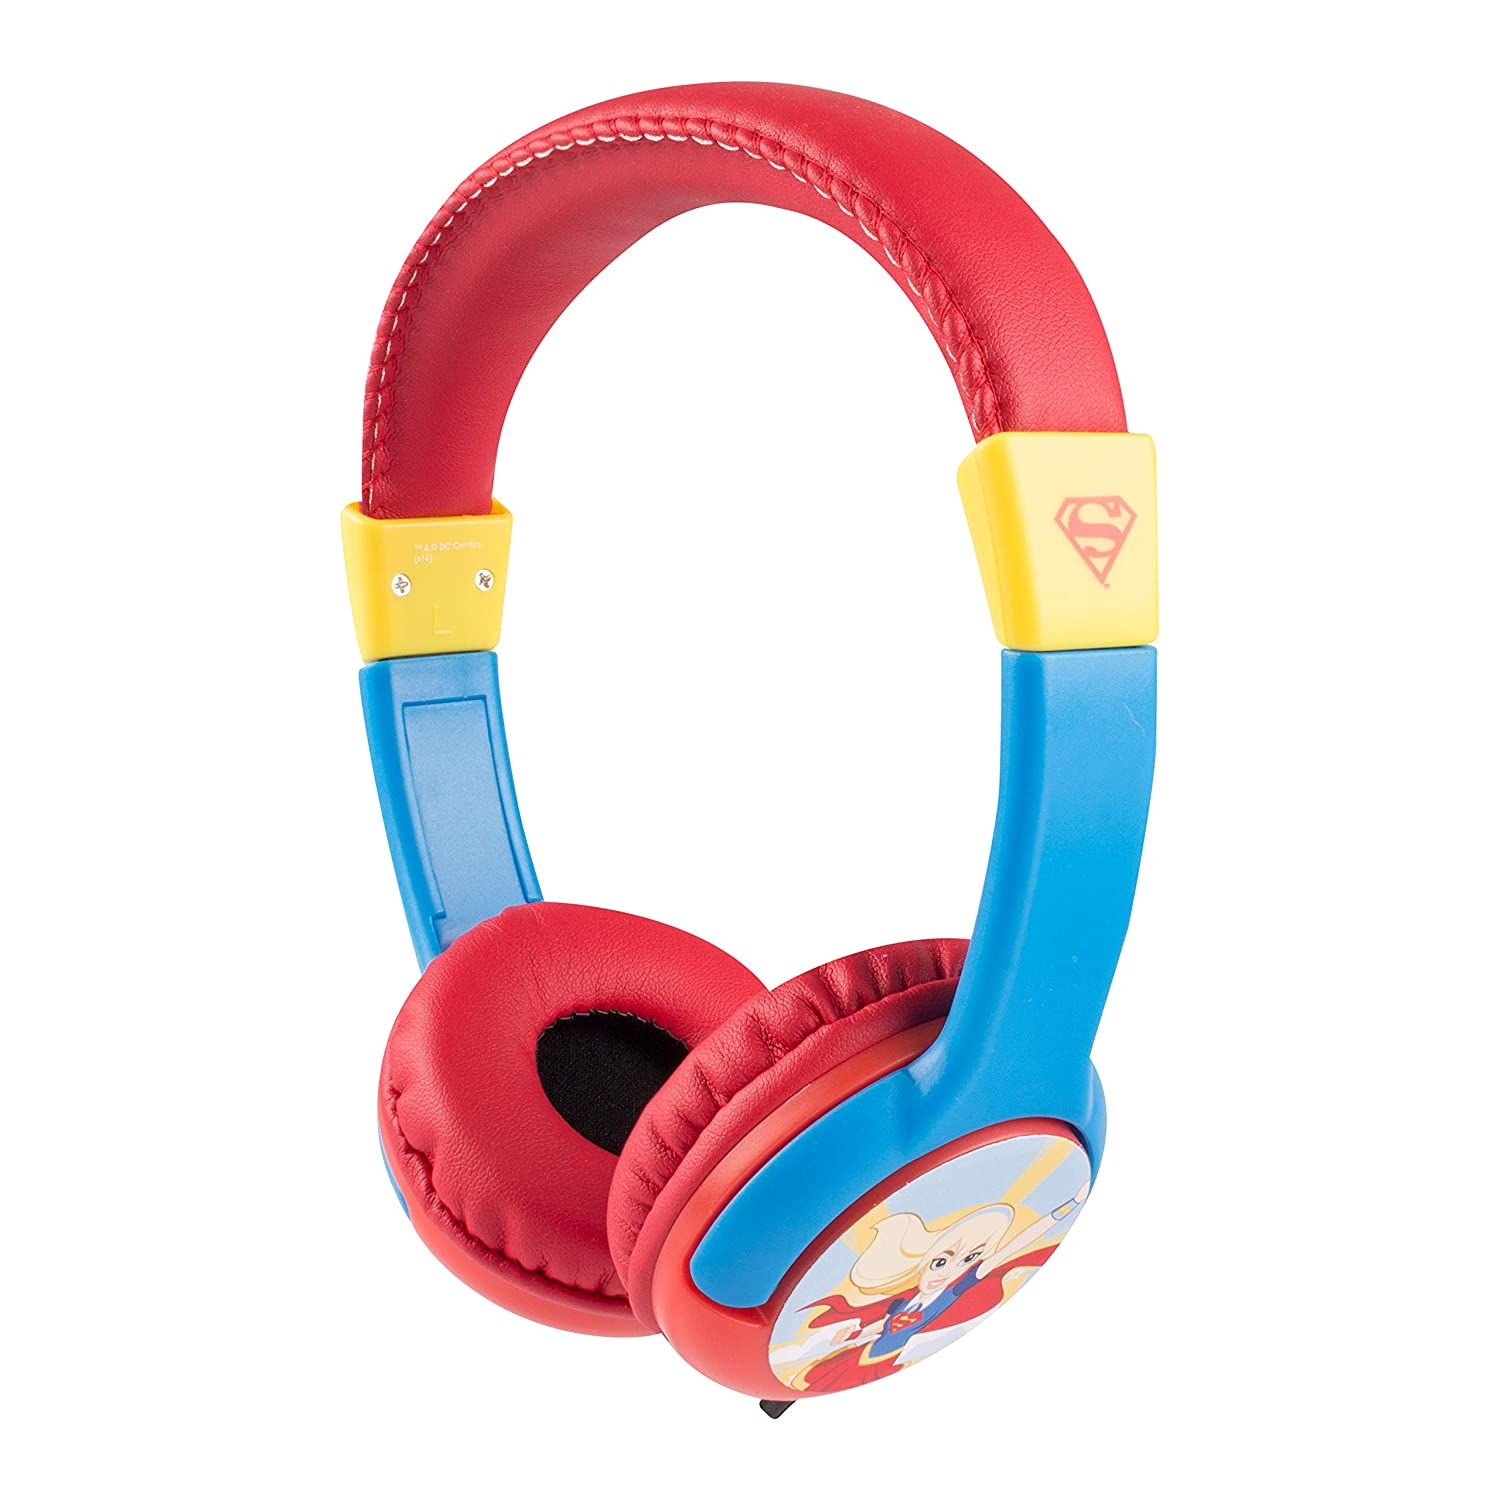 Super Girl HP2-09393C Kid Safe Headphone, Recommended for Ages 3-10, Tangle Free Cord, Wired Connectivity, Volume Limiting Technology, Cushioned Ear Cups and Adjustable Head Strap